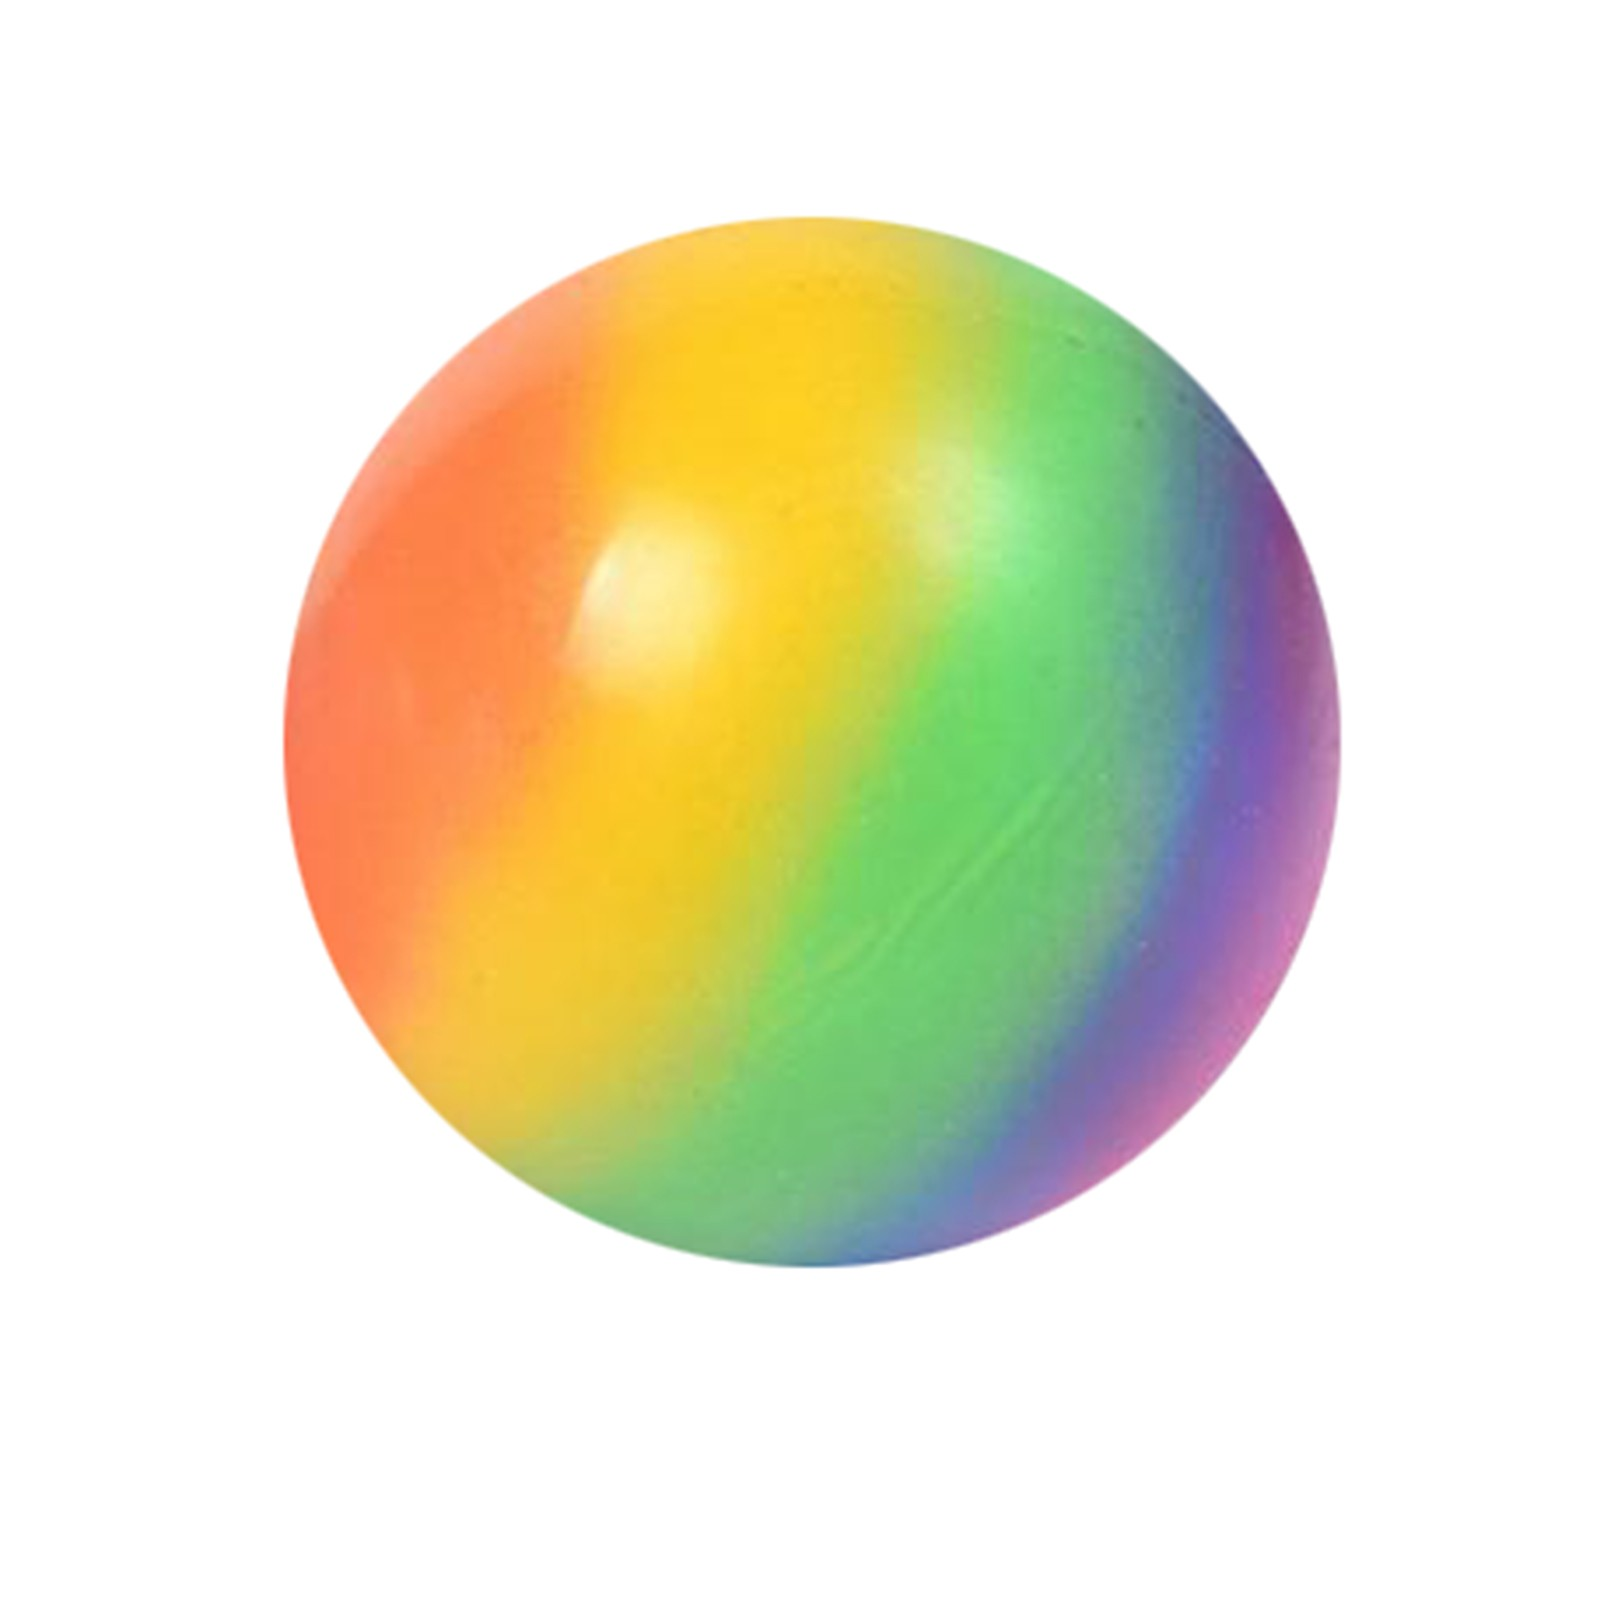 Creative Colorful Vent Ball Decompression Toy Men And Women Decompression Toy Squishies Slow Rising Stress Relief Squeeze Toys img2